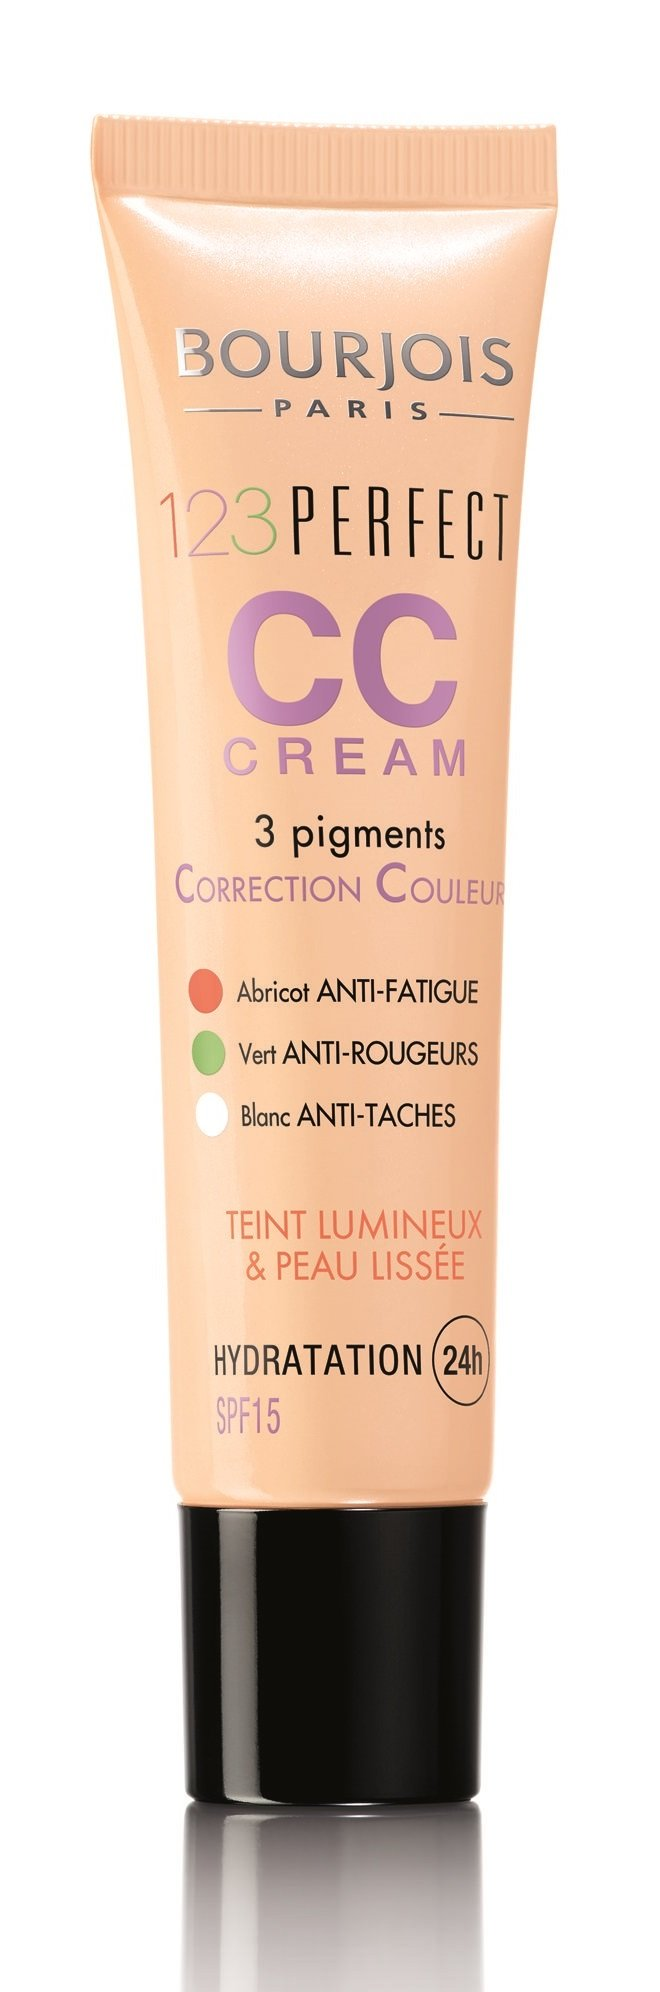 CC kremas Bourjois 123 Perfect 30 ml